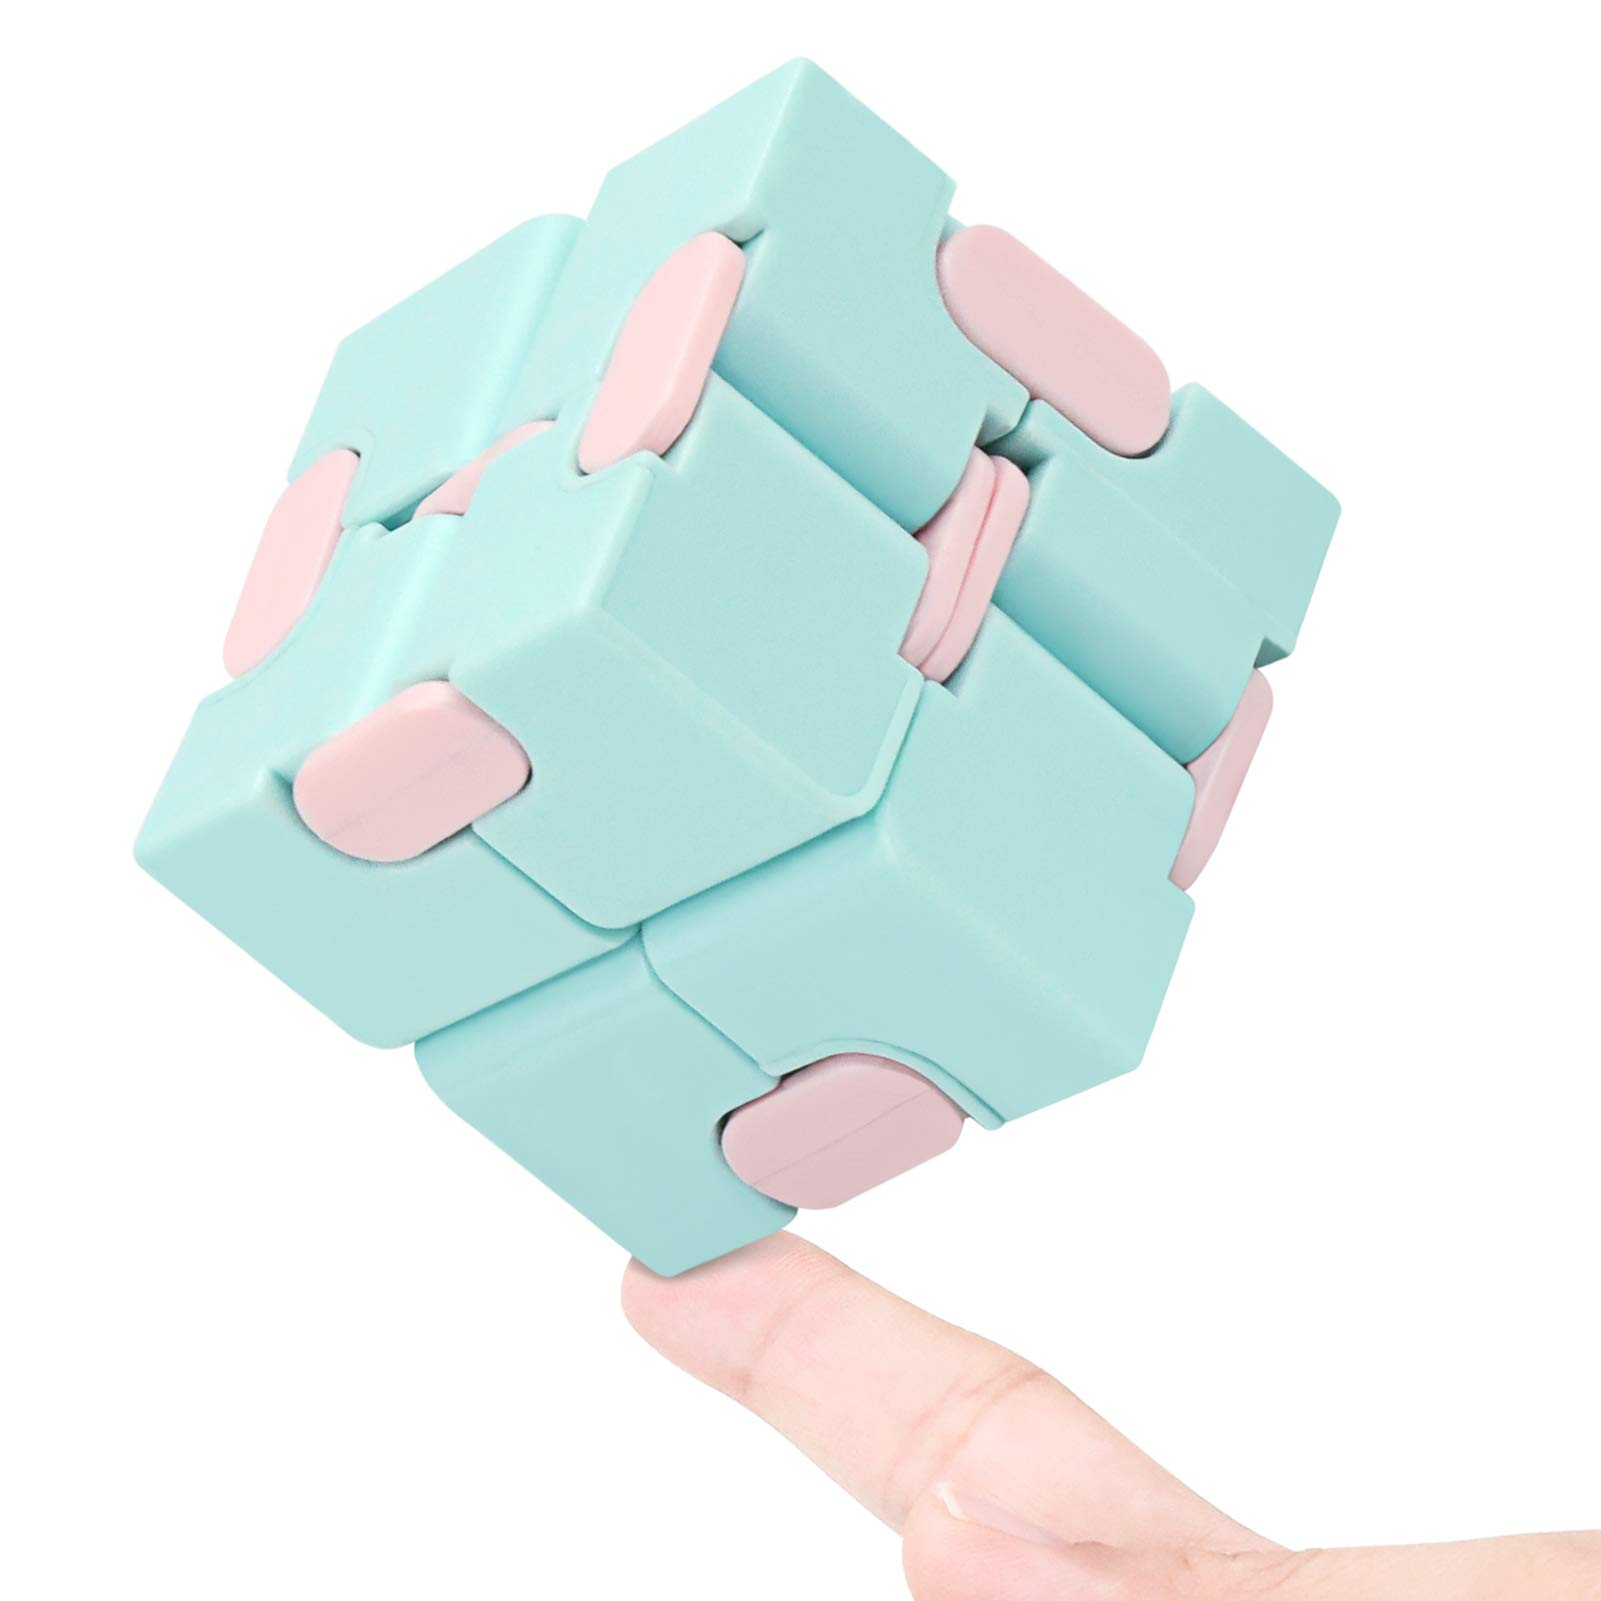 WUQID Infinity Cube Fidget Toy Stress Relieving Fidgeting Game for Kids and Adults,Cute Mini Unique Gadget for Anxiety Relief and Kill Time (Macaron Blue)